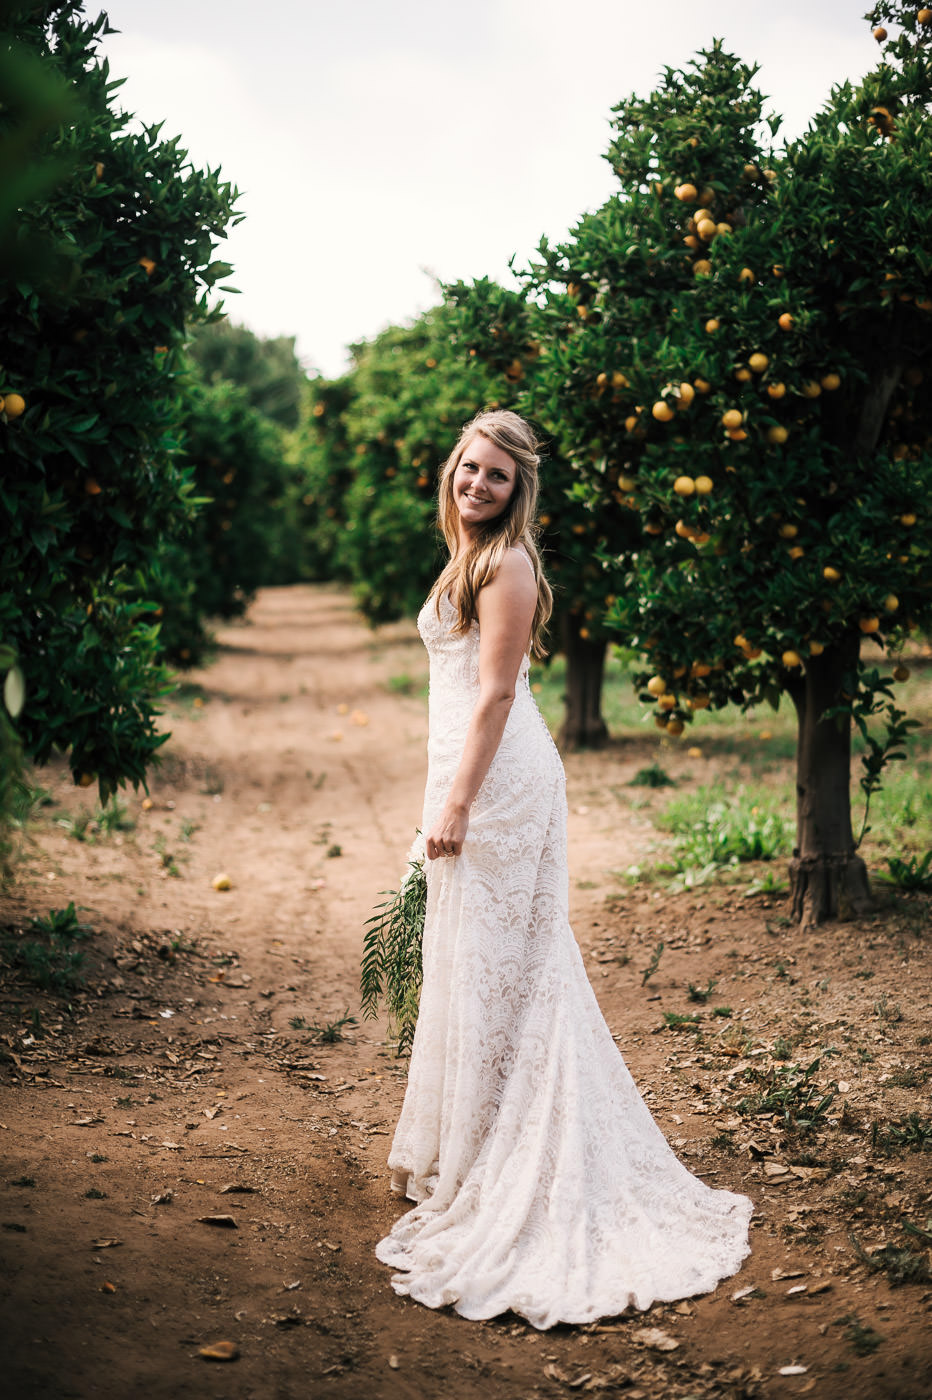 Wedding photographer takes portraits of the bride walking through the orange trees of Temecula California.